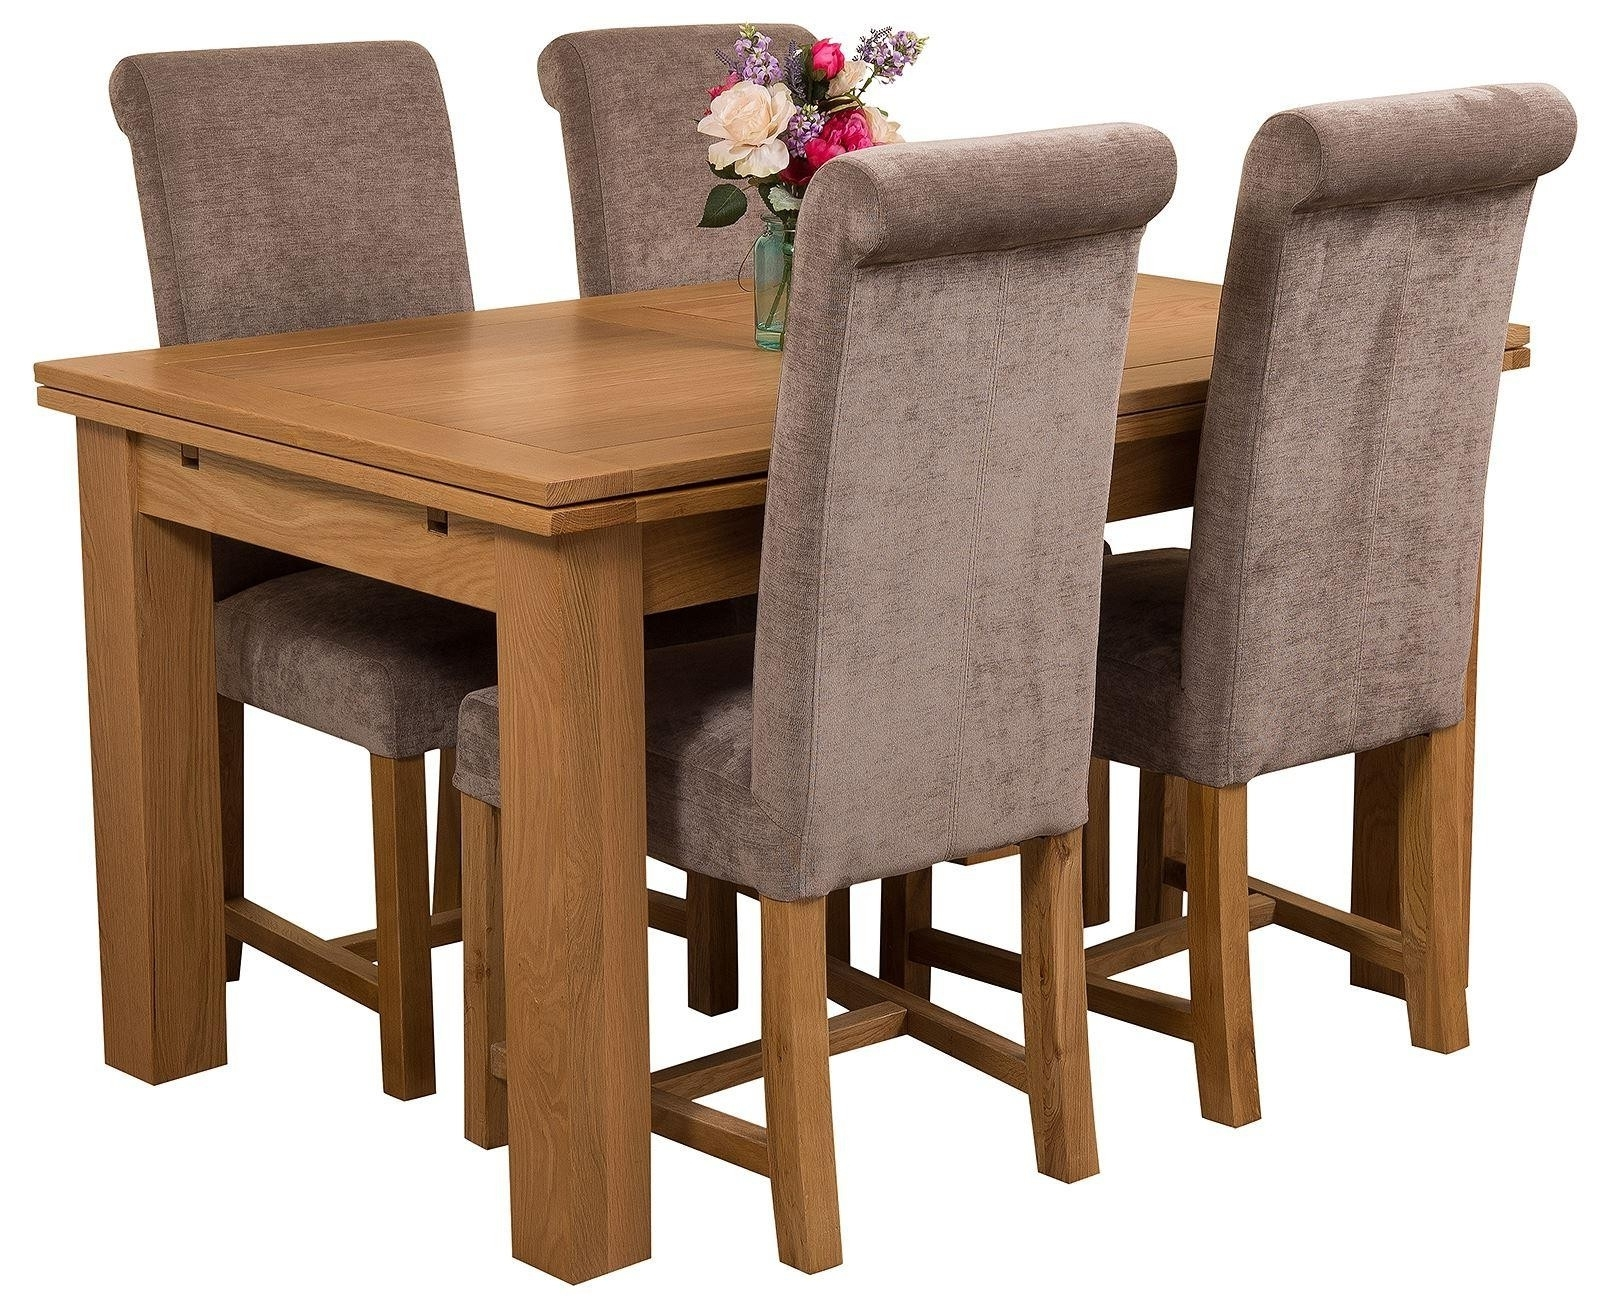 Richmond Medium Oak Dining Set 4 Grey Chairs Regarding Best And Newest Oak Dining Tables And Fabric Chairs (View 17 of 25)